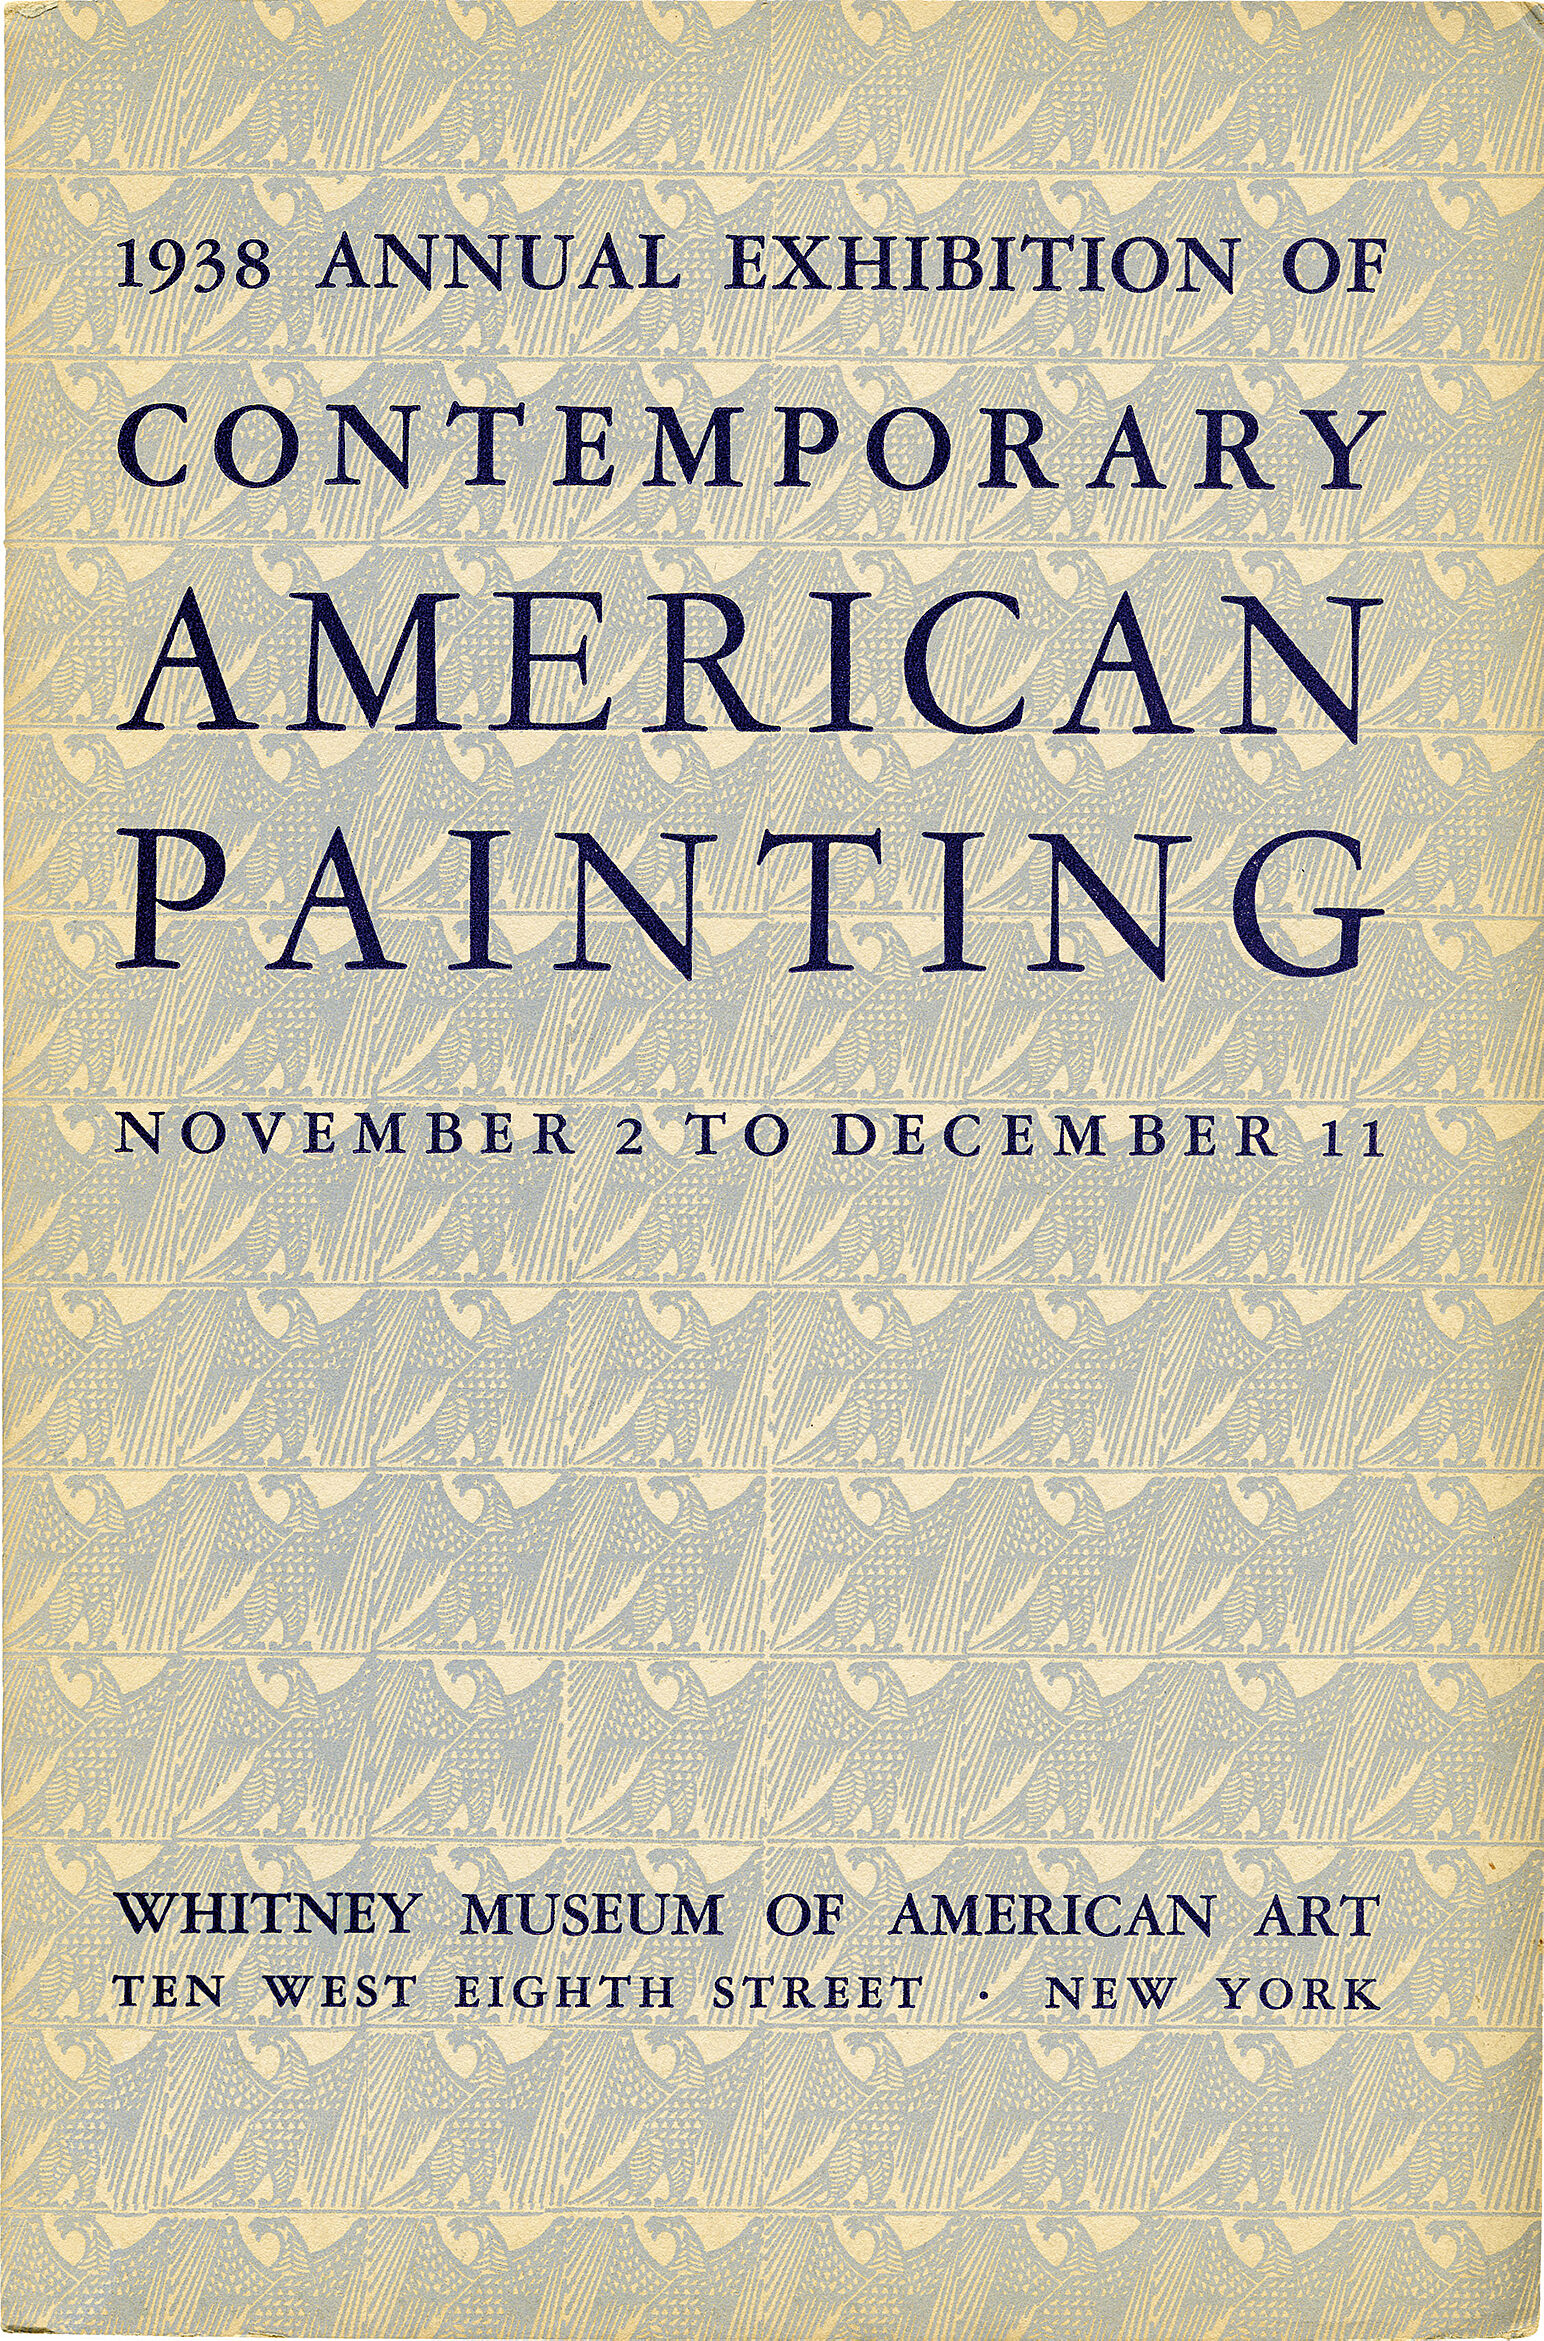 Cover for 1938 Annual Exhibition of Contemporary American Painting catalogue